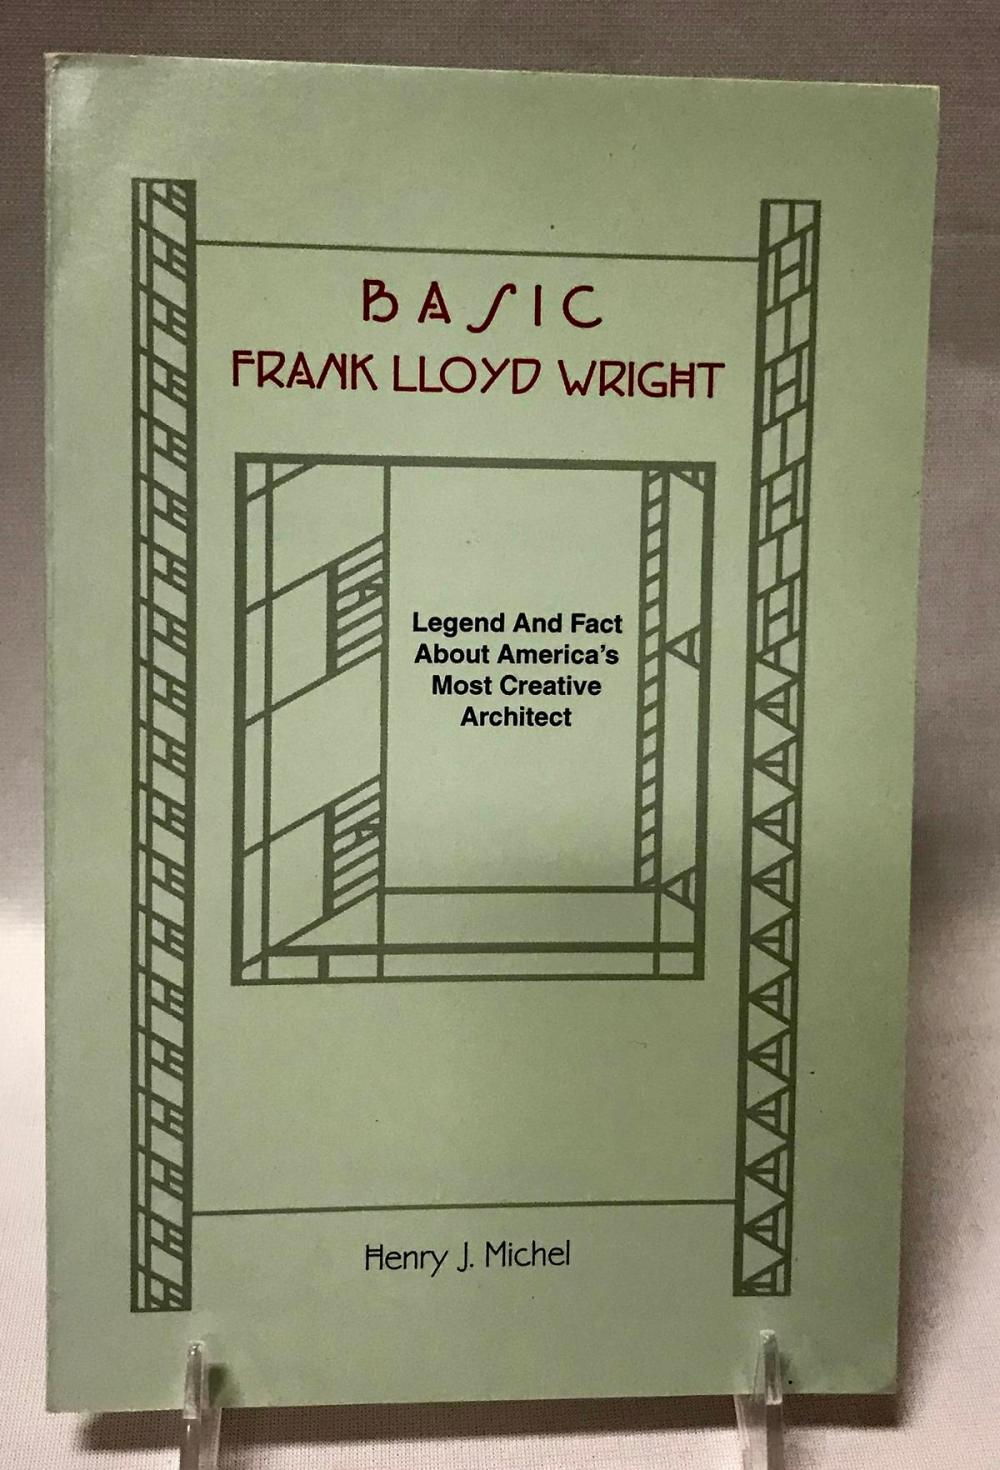 1999 Basic Frank Lloyd Wright: Legend and Fact about America's Most Creative Architect by Henry J. Michel